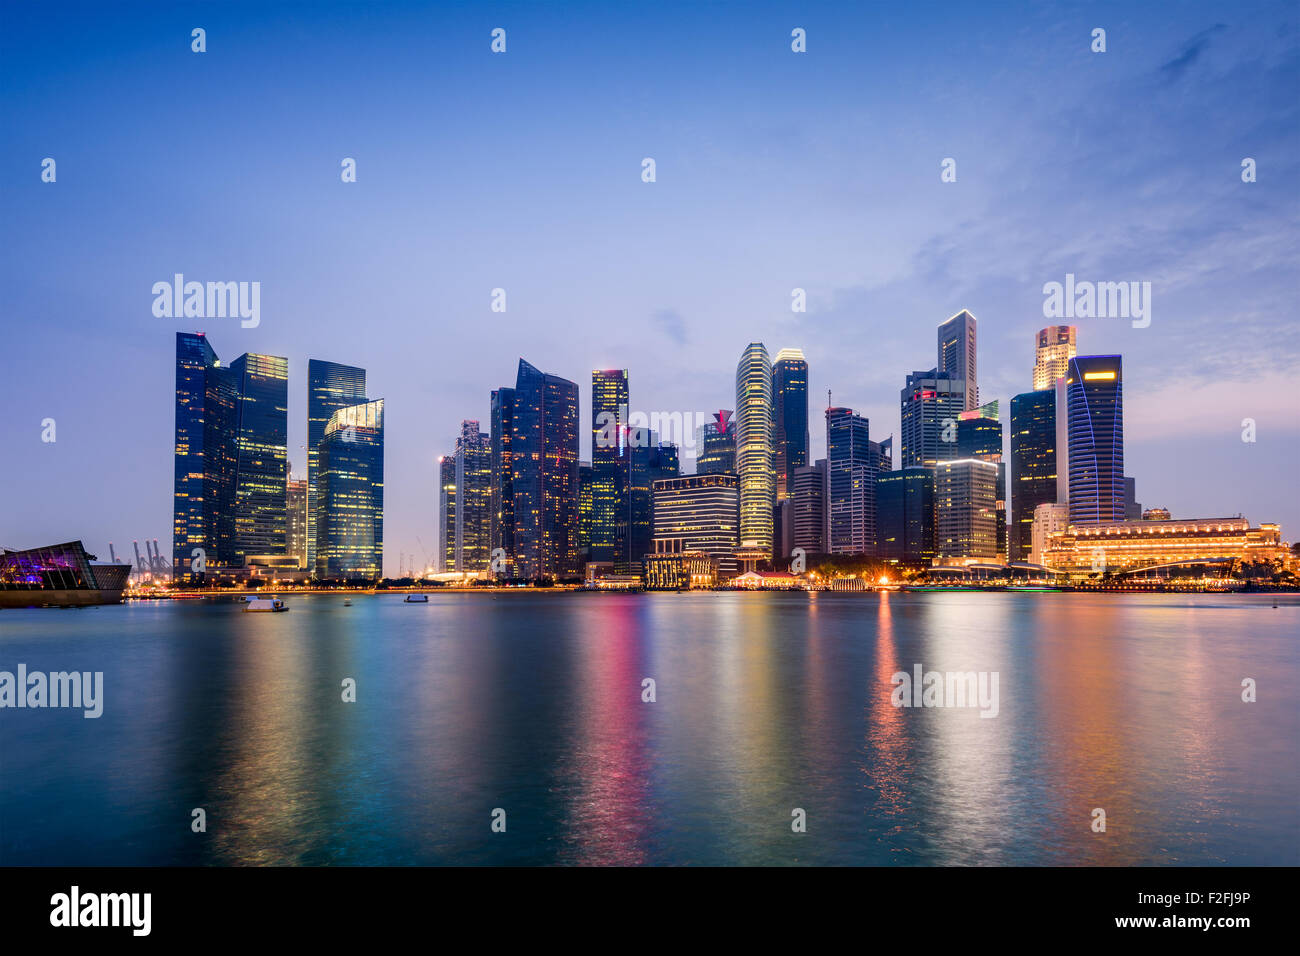 Skyline von Singapur auf dem Marina Bay. Stockbild